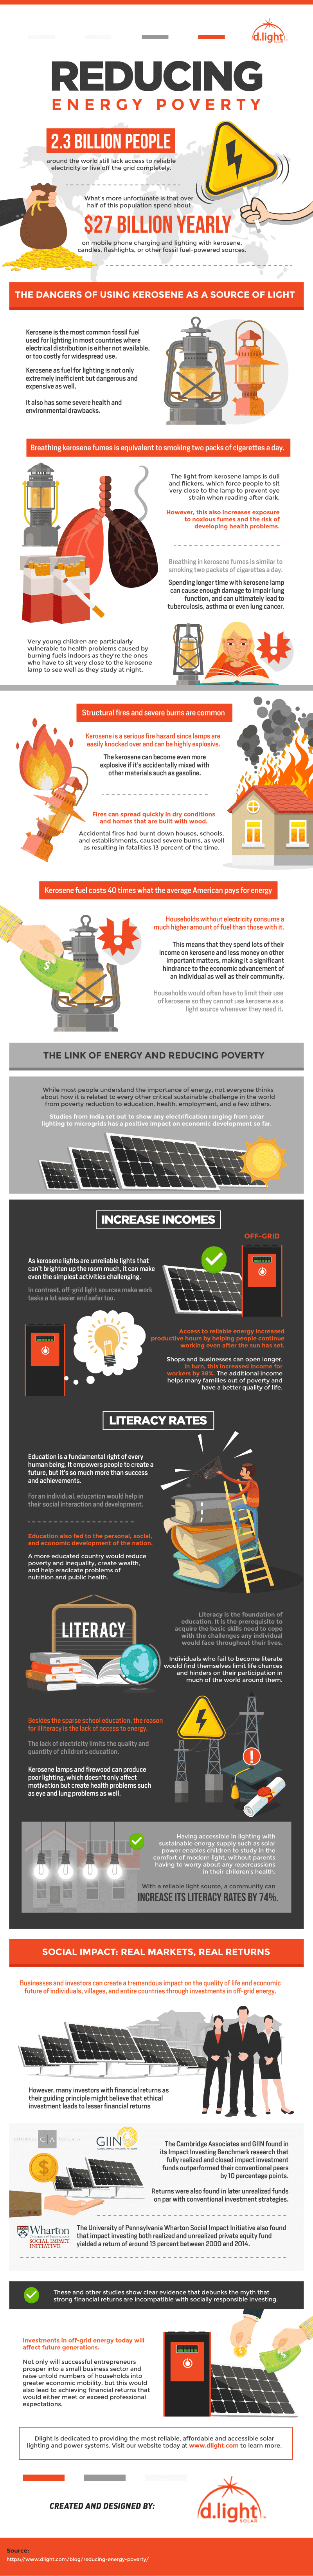 Reducing Energy Poverty #infographic